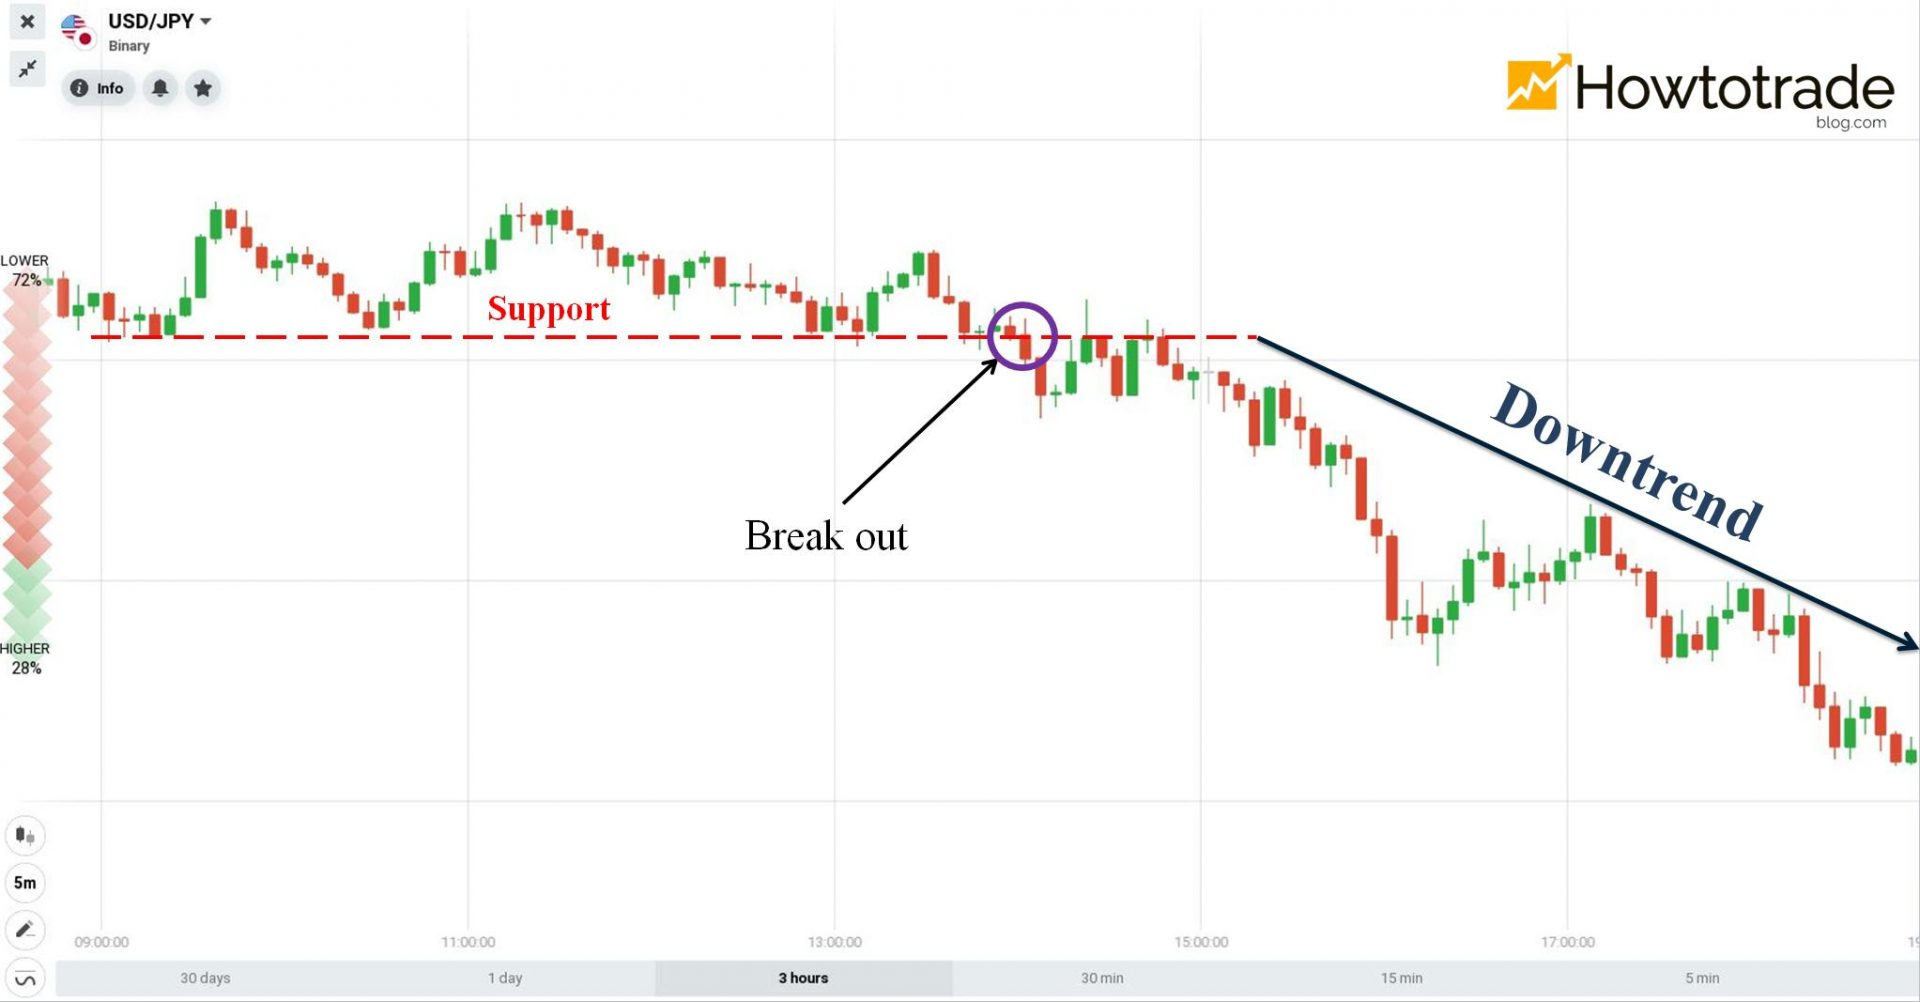 The price breaks out of the support and goes down